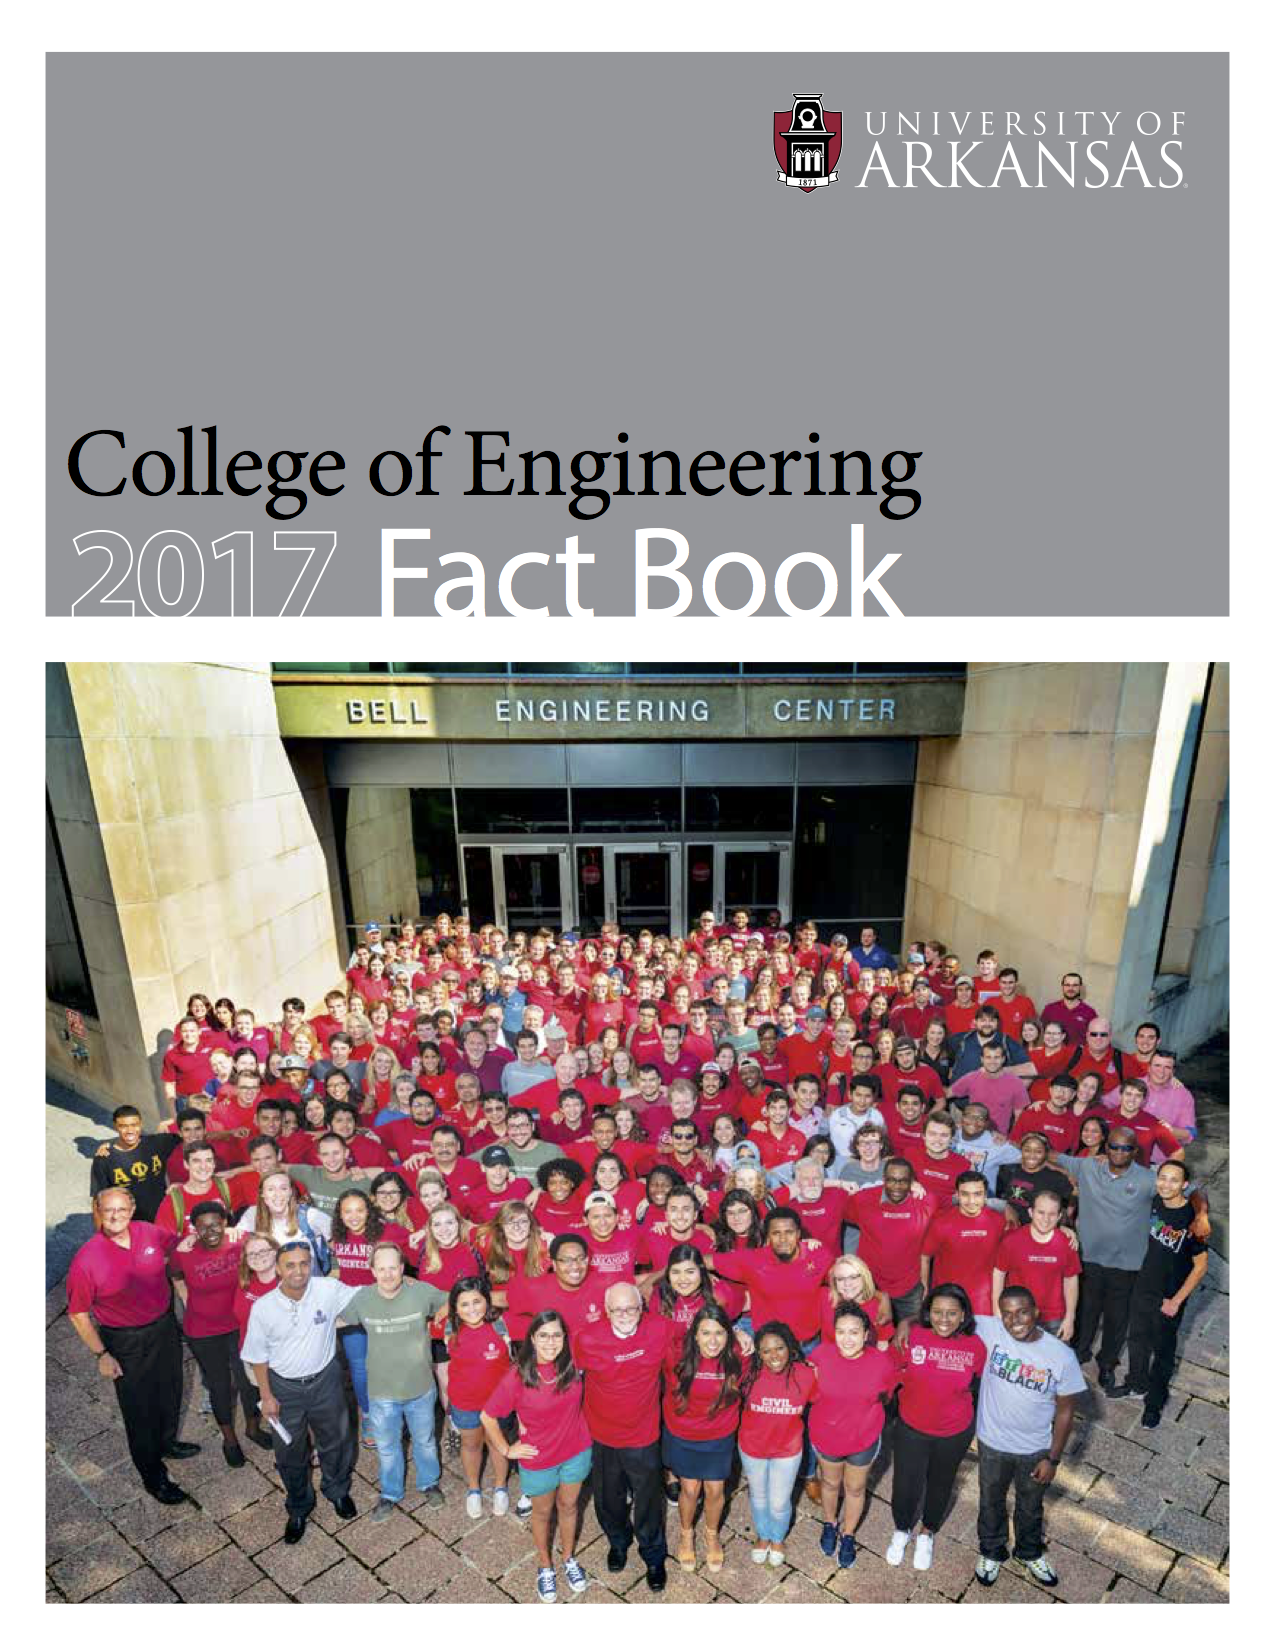 College of Engineering 2017 Fact Book